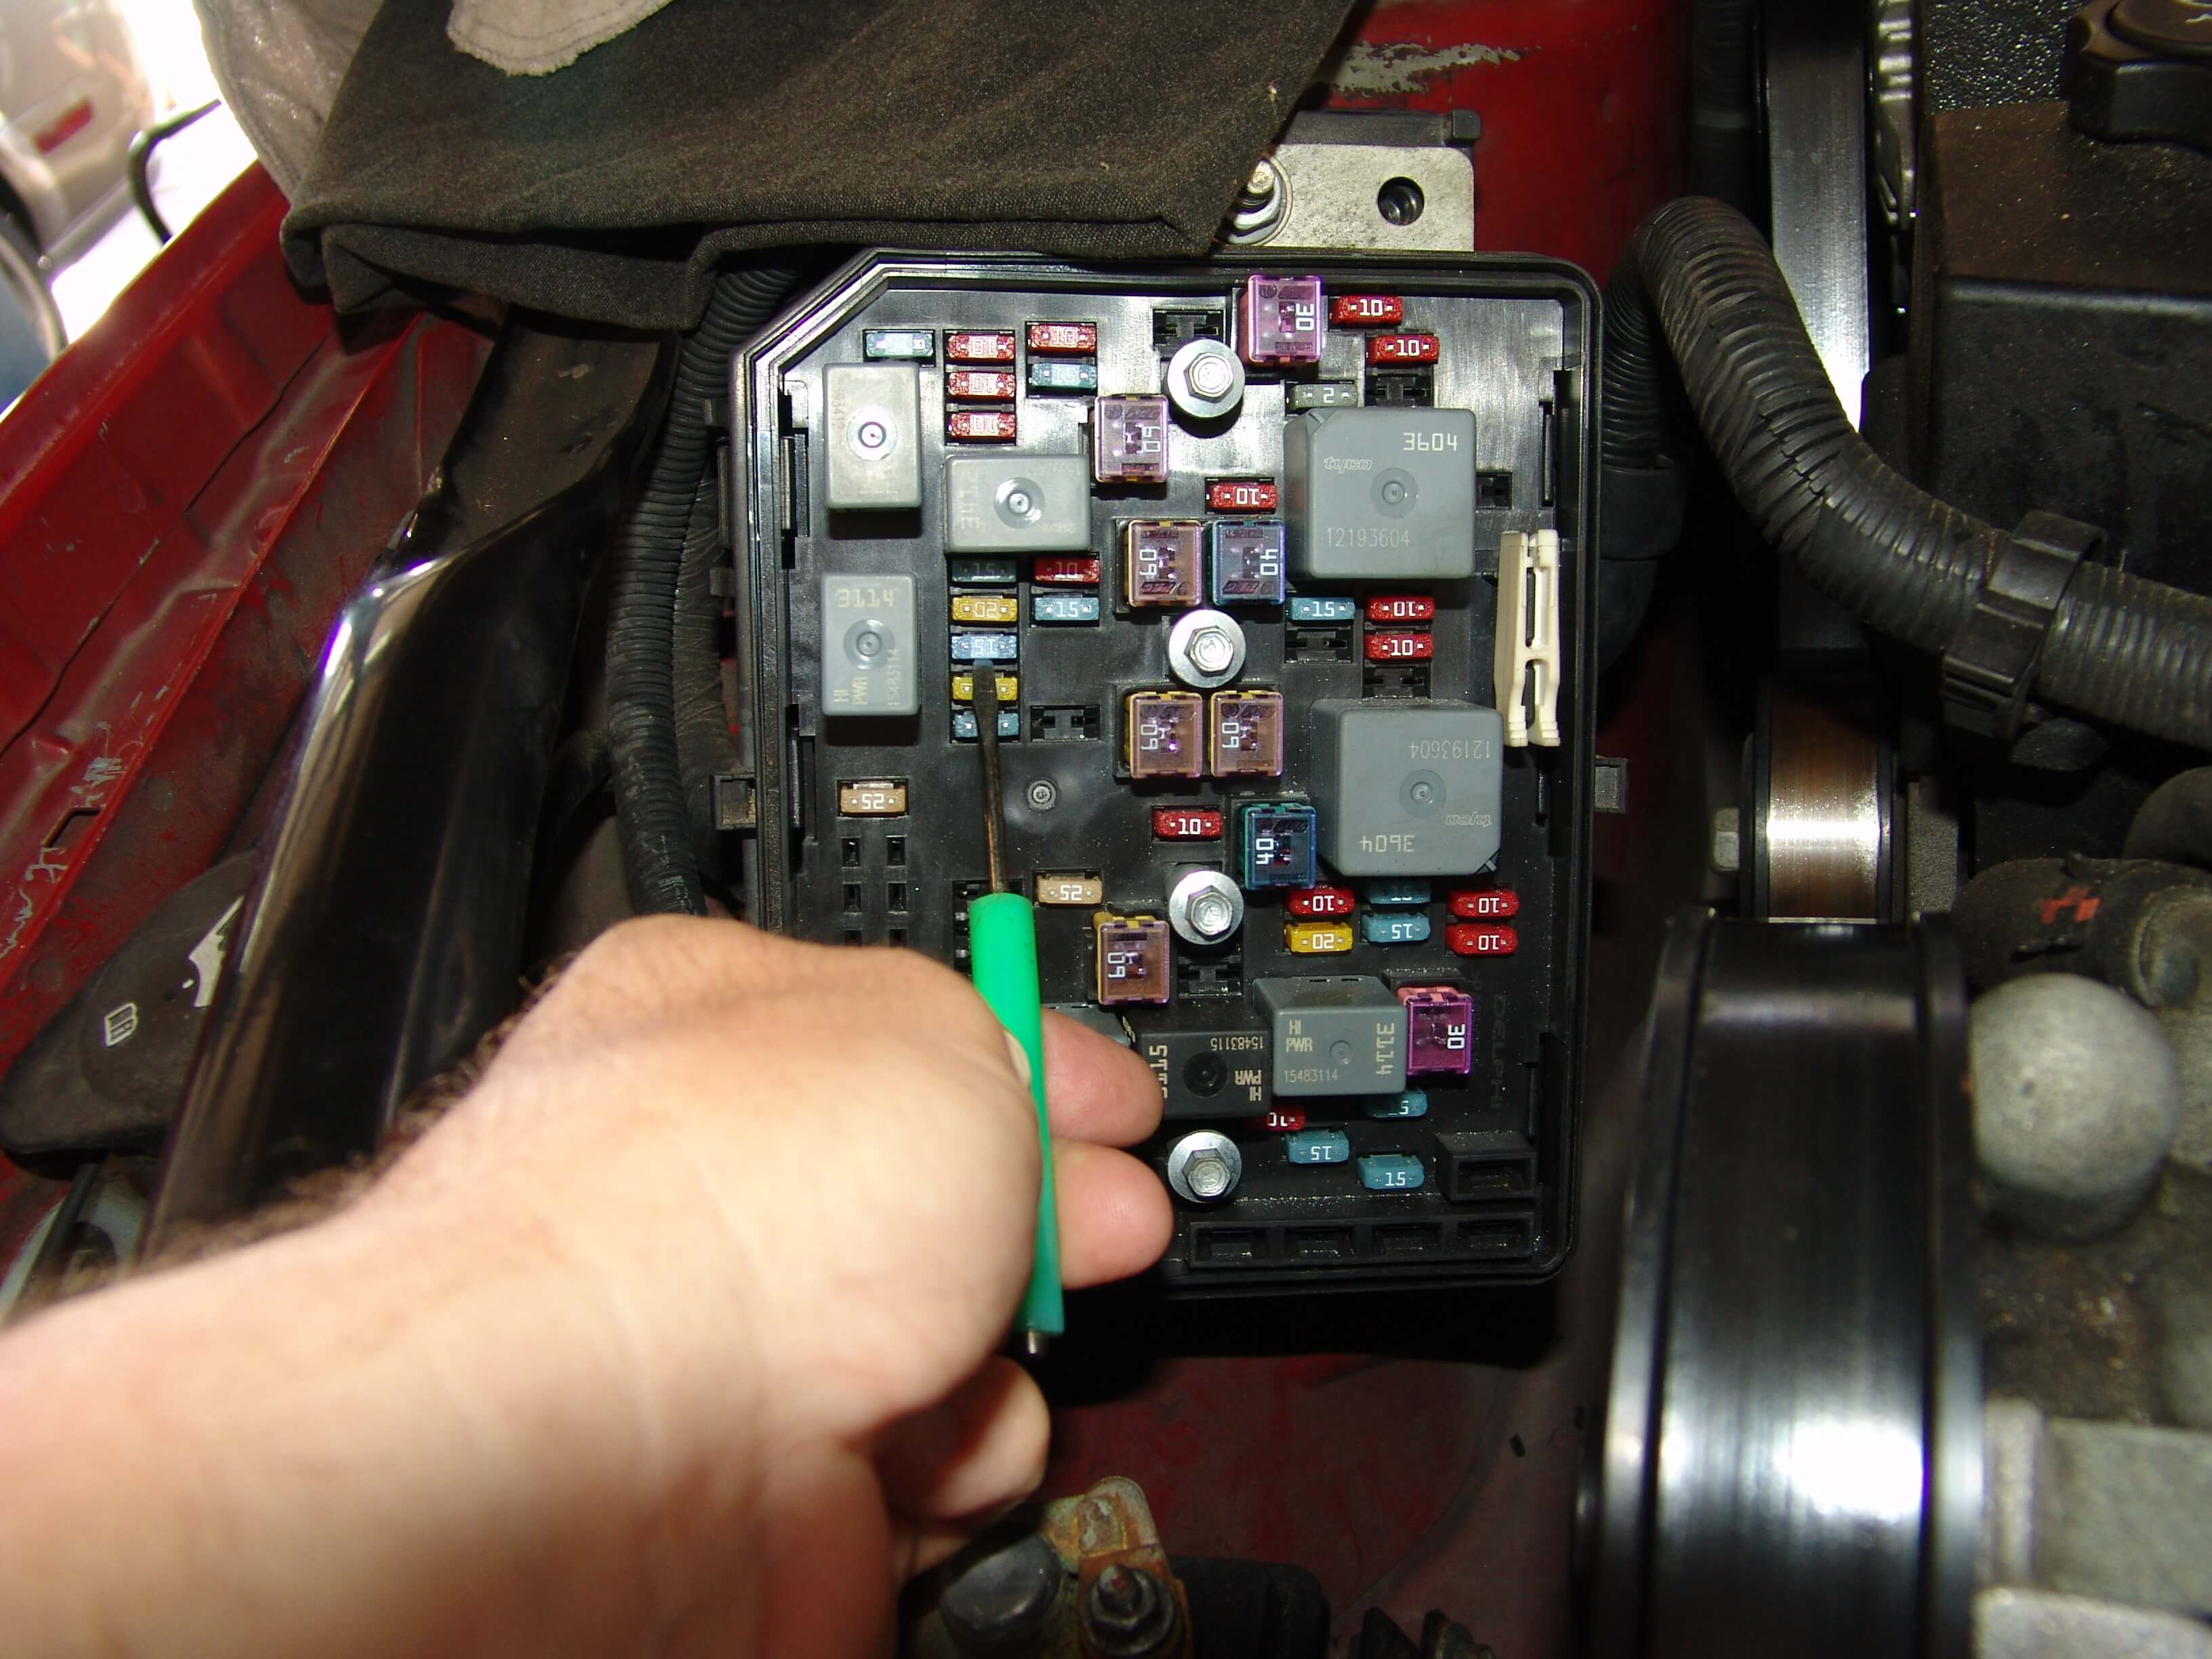 Sparky's Answers - 2007 Chevrolet Monte Carlo SS Emissions 1 Fuse Blows | Chevrolet Monte Carlo 2007 Fuse Box |  | Sparky's Answers